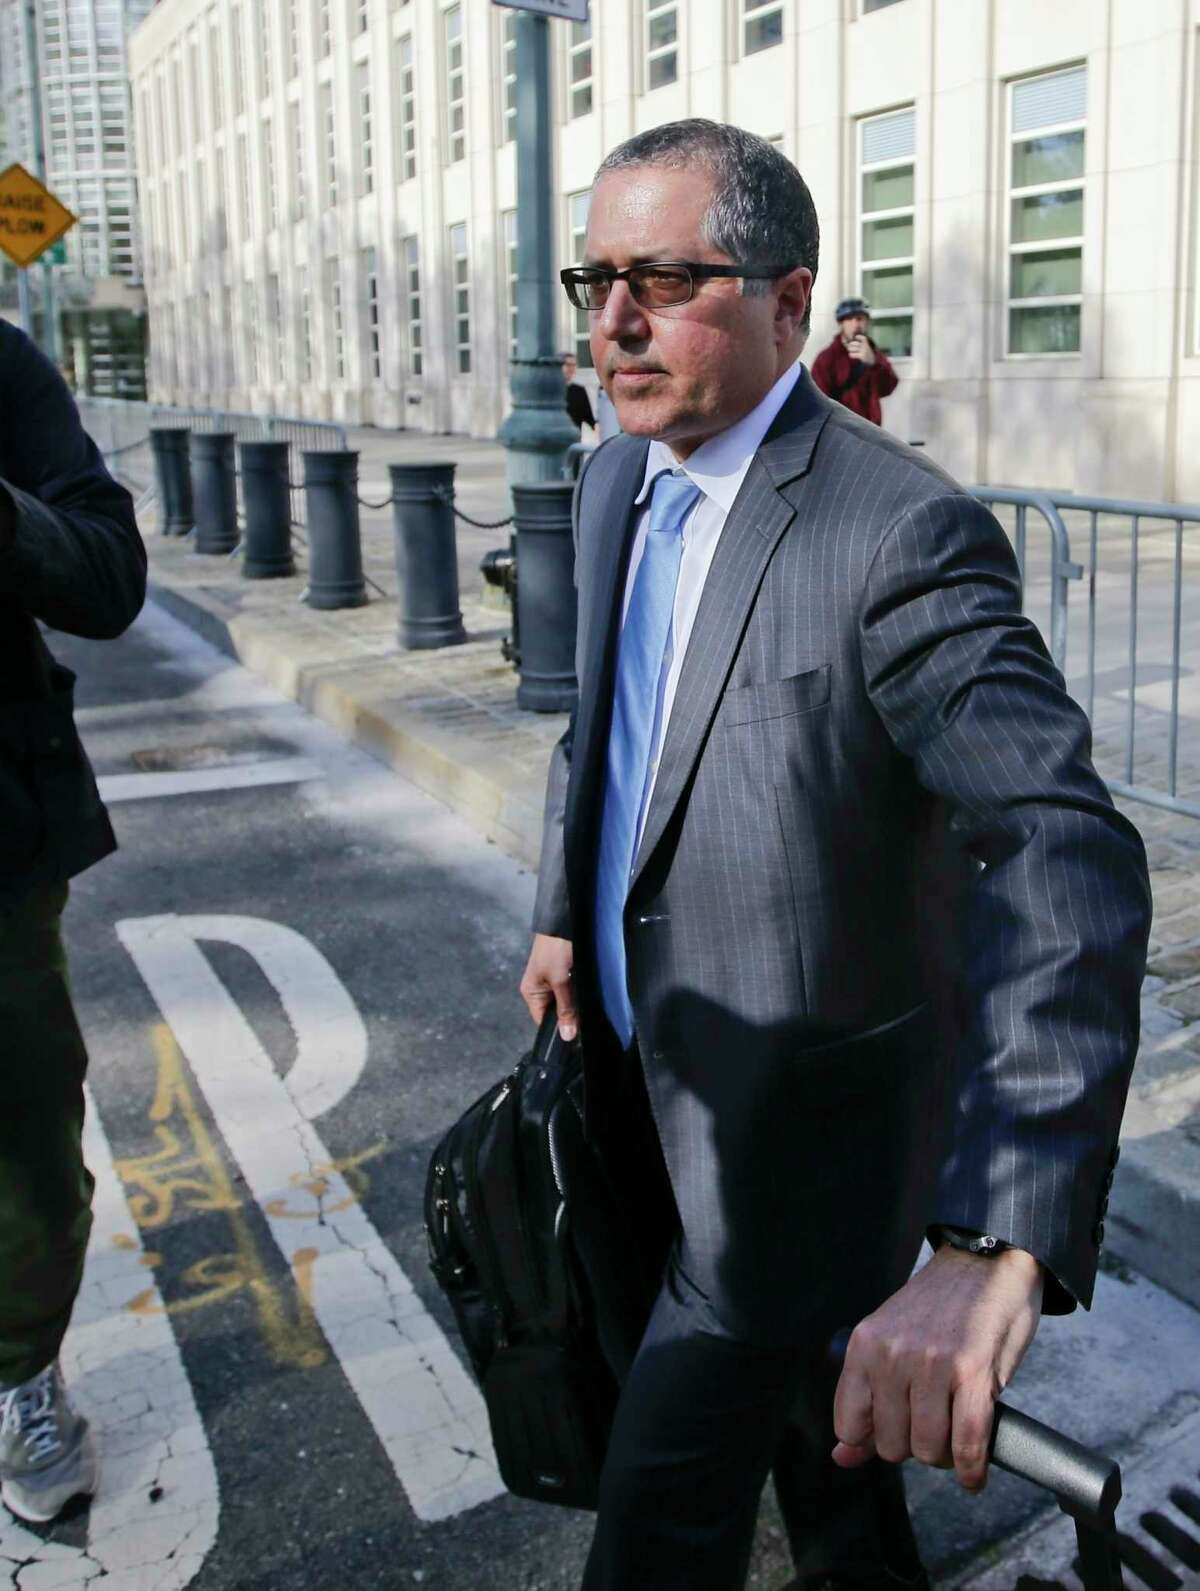 Marc Agnifilo, attorney for Keith Raniere, leaves Brooklyn federal court Tuesday, May 7, 2019, in New York. Raniere, the former leader of the self help group called NXIVM, has pleaded not guilty to the charges that he turned his followers into sex slaves.